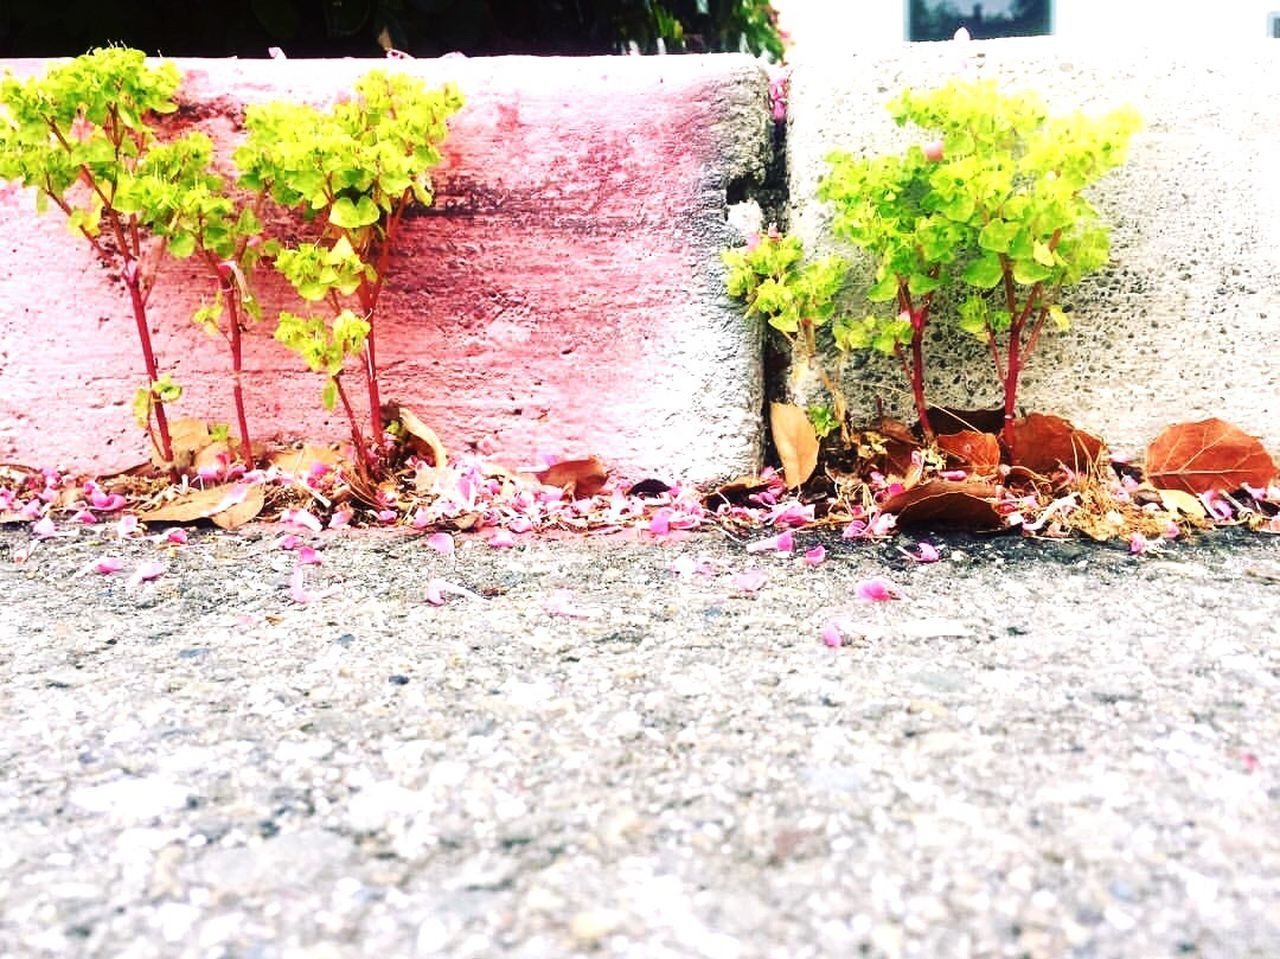 leaf, change, autumn, day, no people, outdoors, plant, nature, built structure, growth, flower, close-up, ivy, fragility, architecture